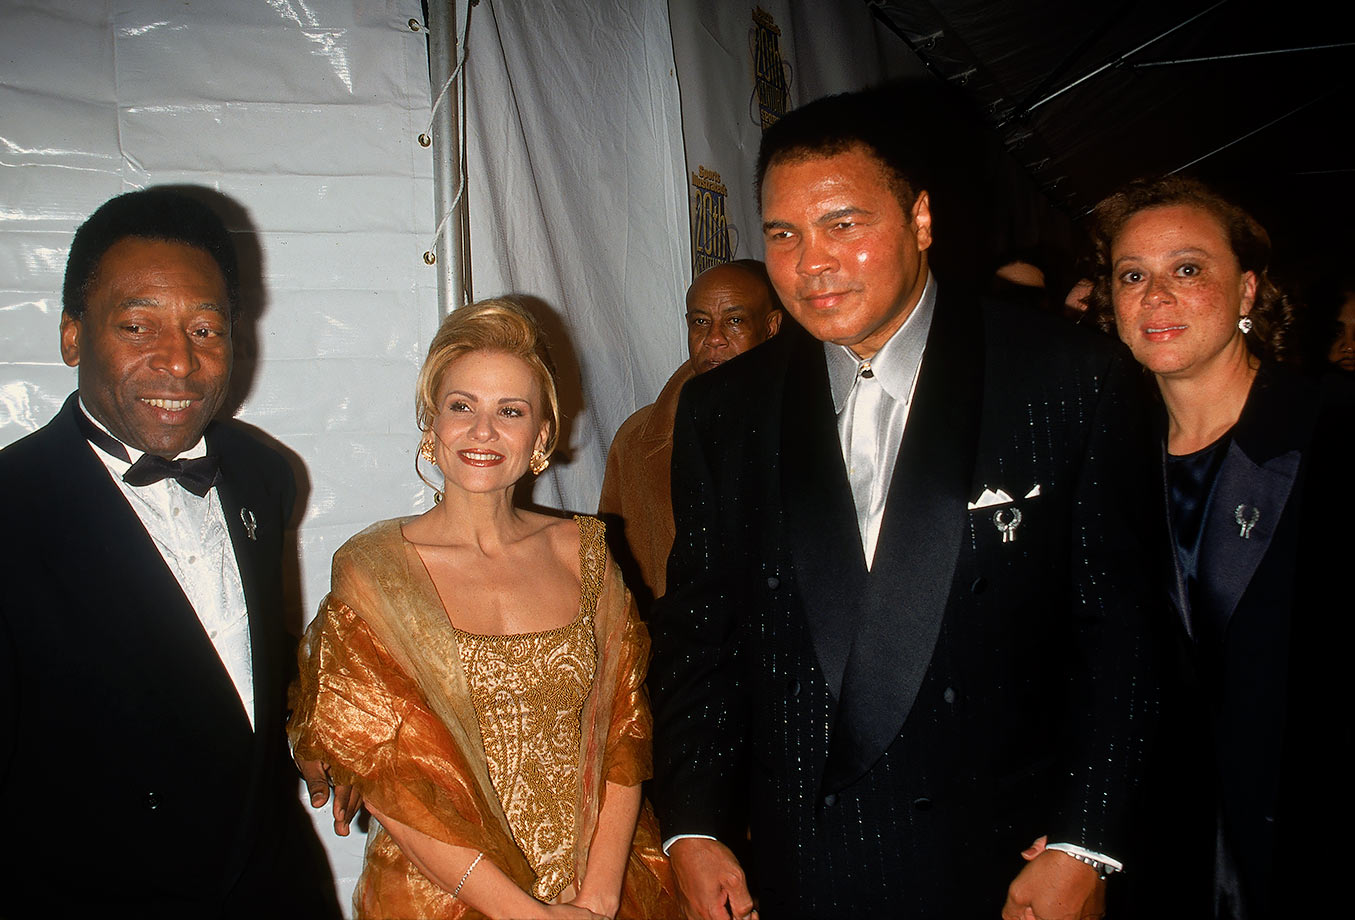 Pelé and his wife, Assiria, pose with boxing legend Muhammad Ali and his wife, Lonnie at Sports Illustrated's 20th Century Sports Awards on Dec. 2, 1989 in New York City. Regarded as the greatest to ever play their respective sports, Ali and Pelé shared something else in common: they both were known by titles other than their birth names. Ali was originally born Cassius Clay, while Pelé is officially named Edison Arantes do Nascimento.